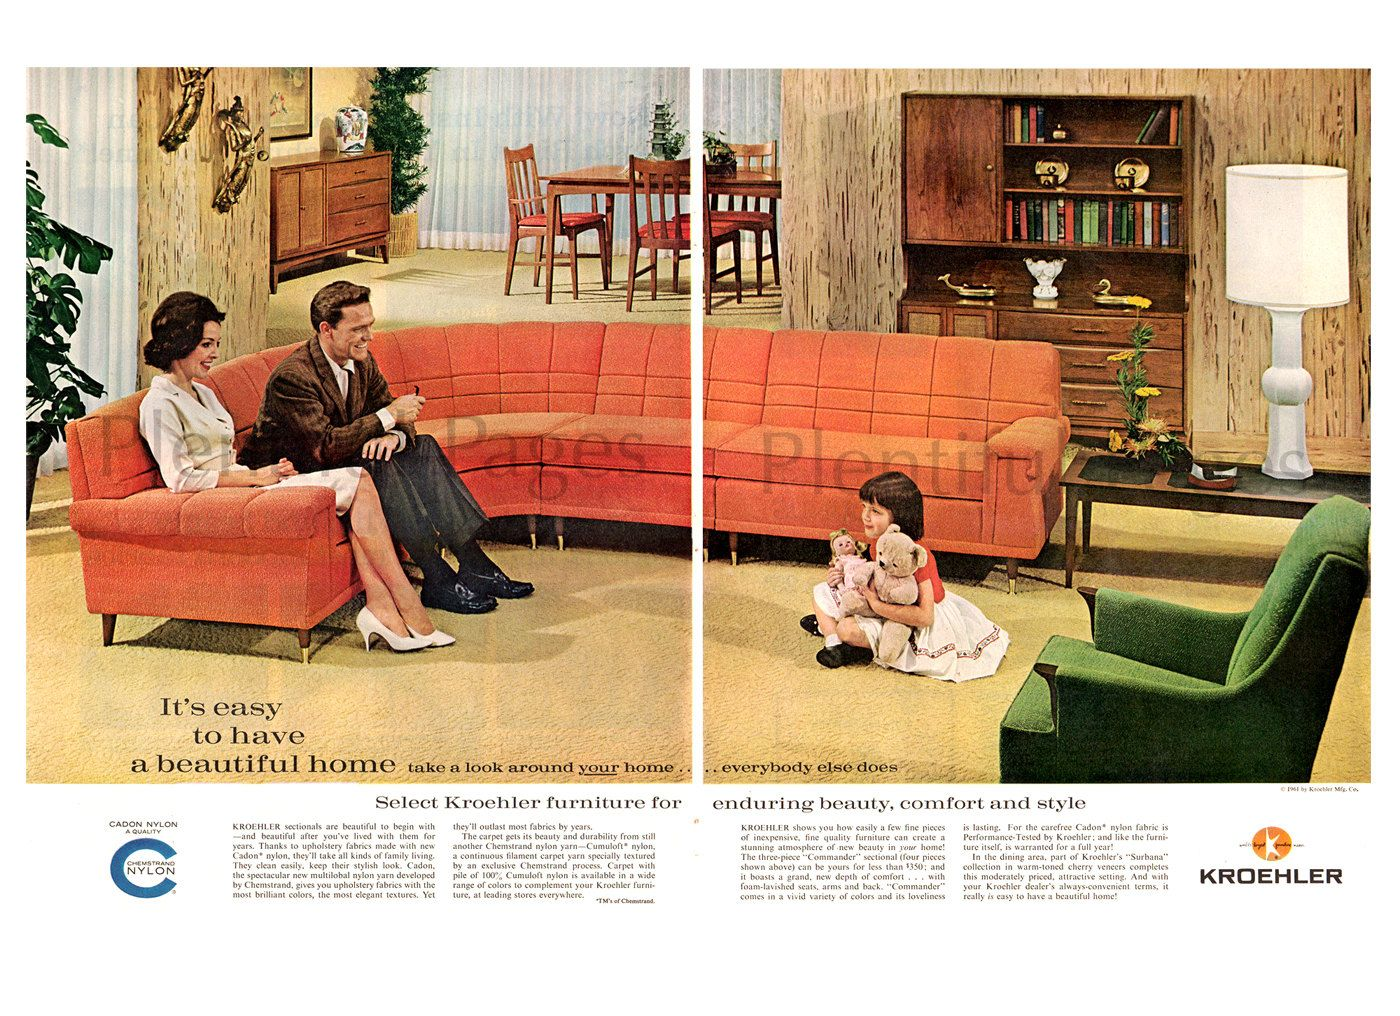 1960s living room with orange couch and green chair